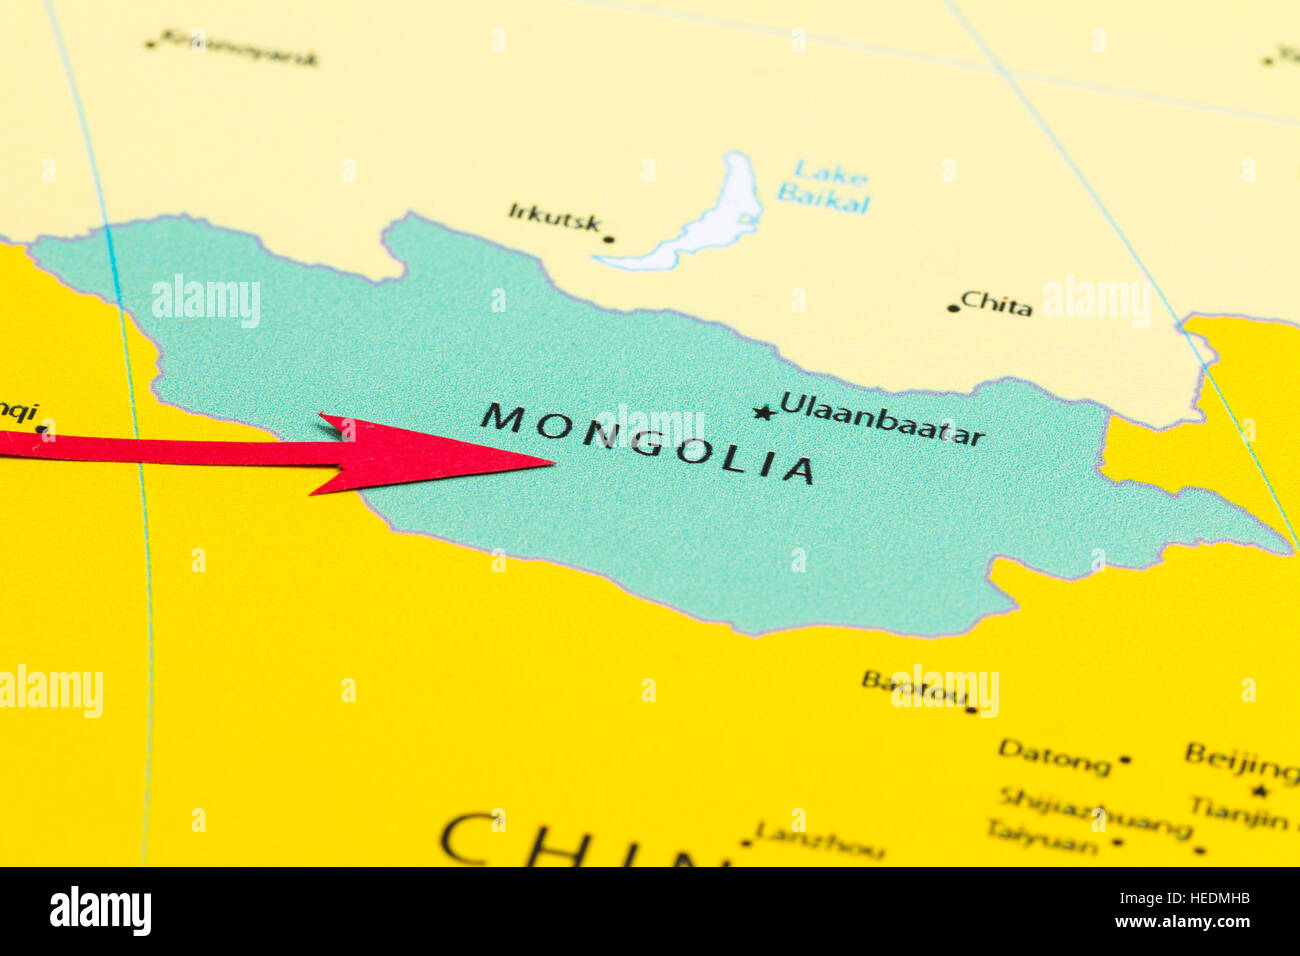 Red arrow pointing Mongolia on the map of Asia continent - Stock Image